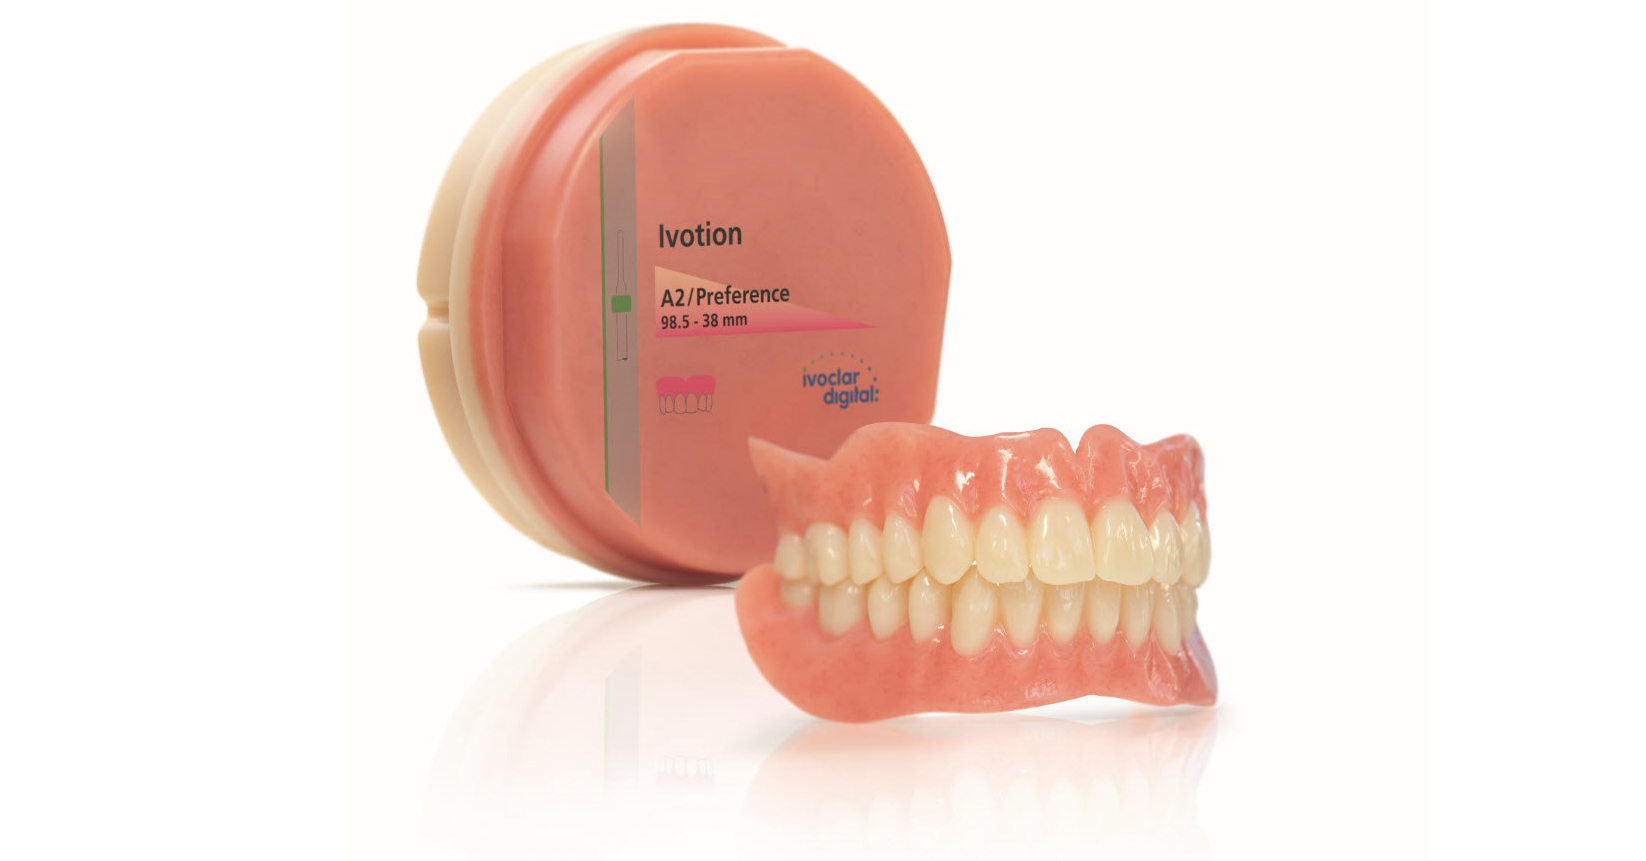 Ivotion – the technology that's disrupting digital dentures